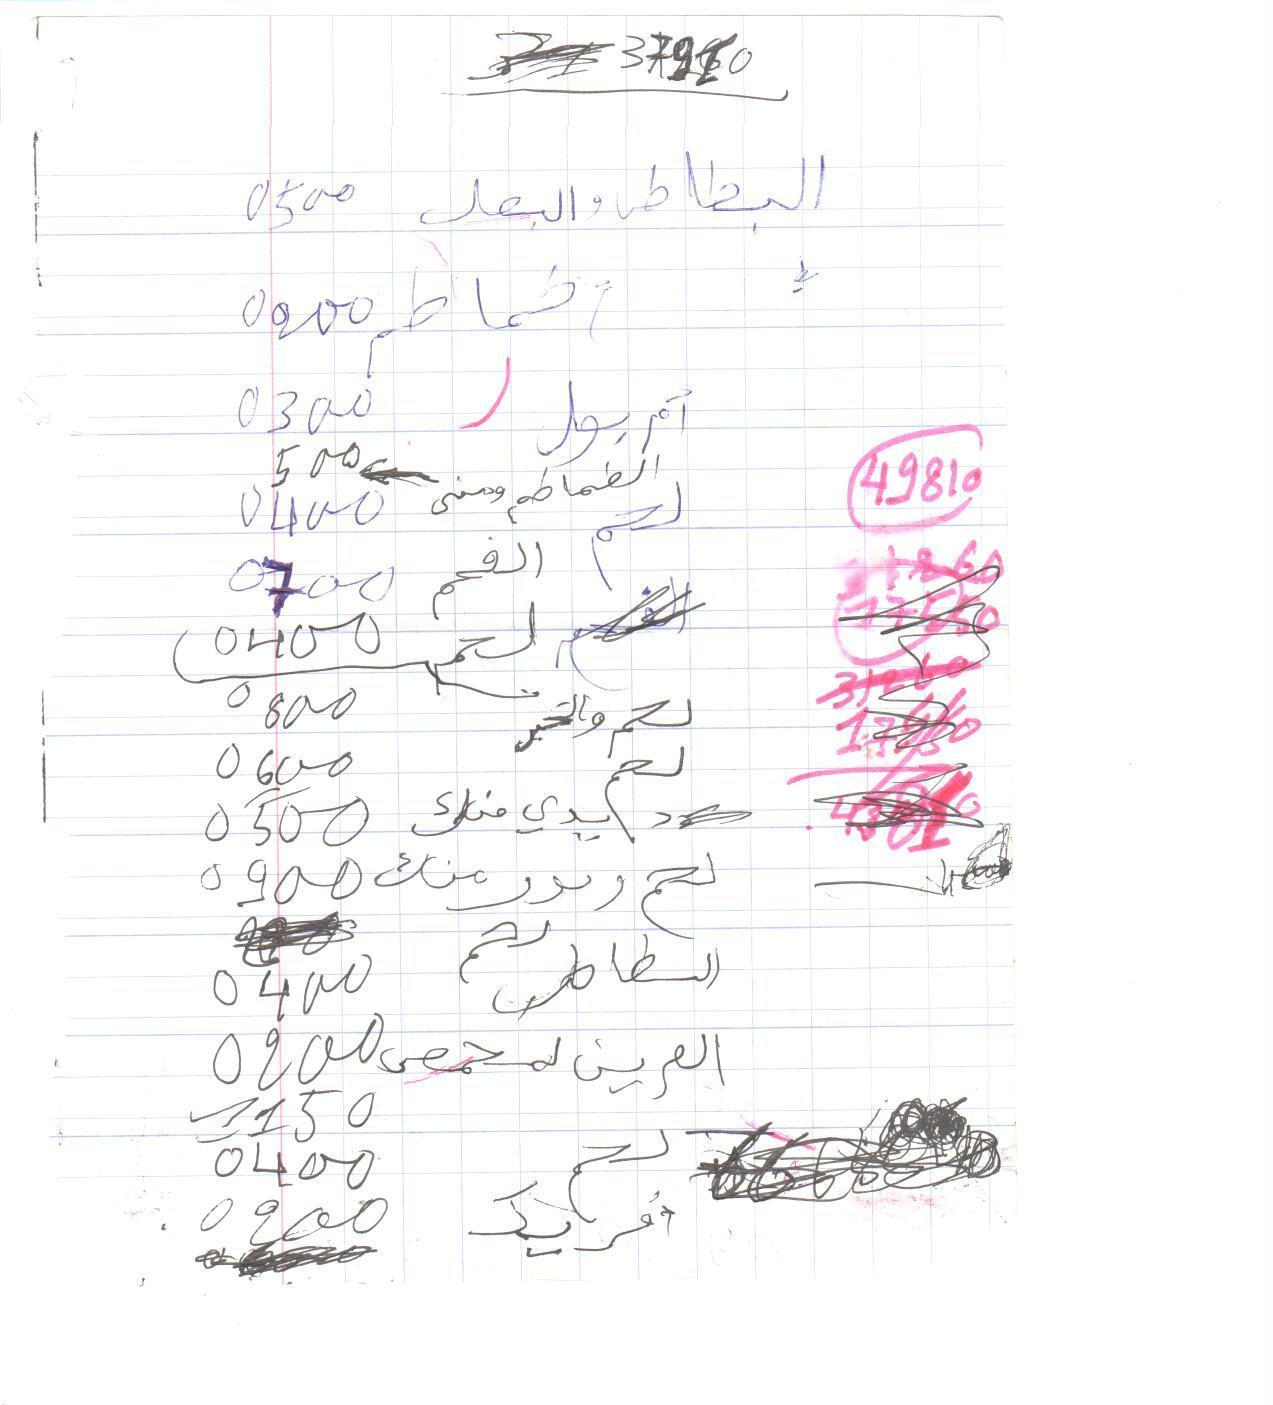 Al Qaida S Receipts From 60 Cent Cake To A 6 800 Workshop